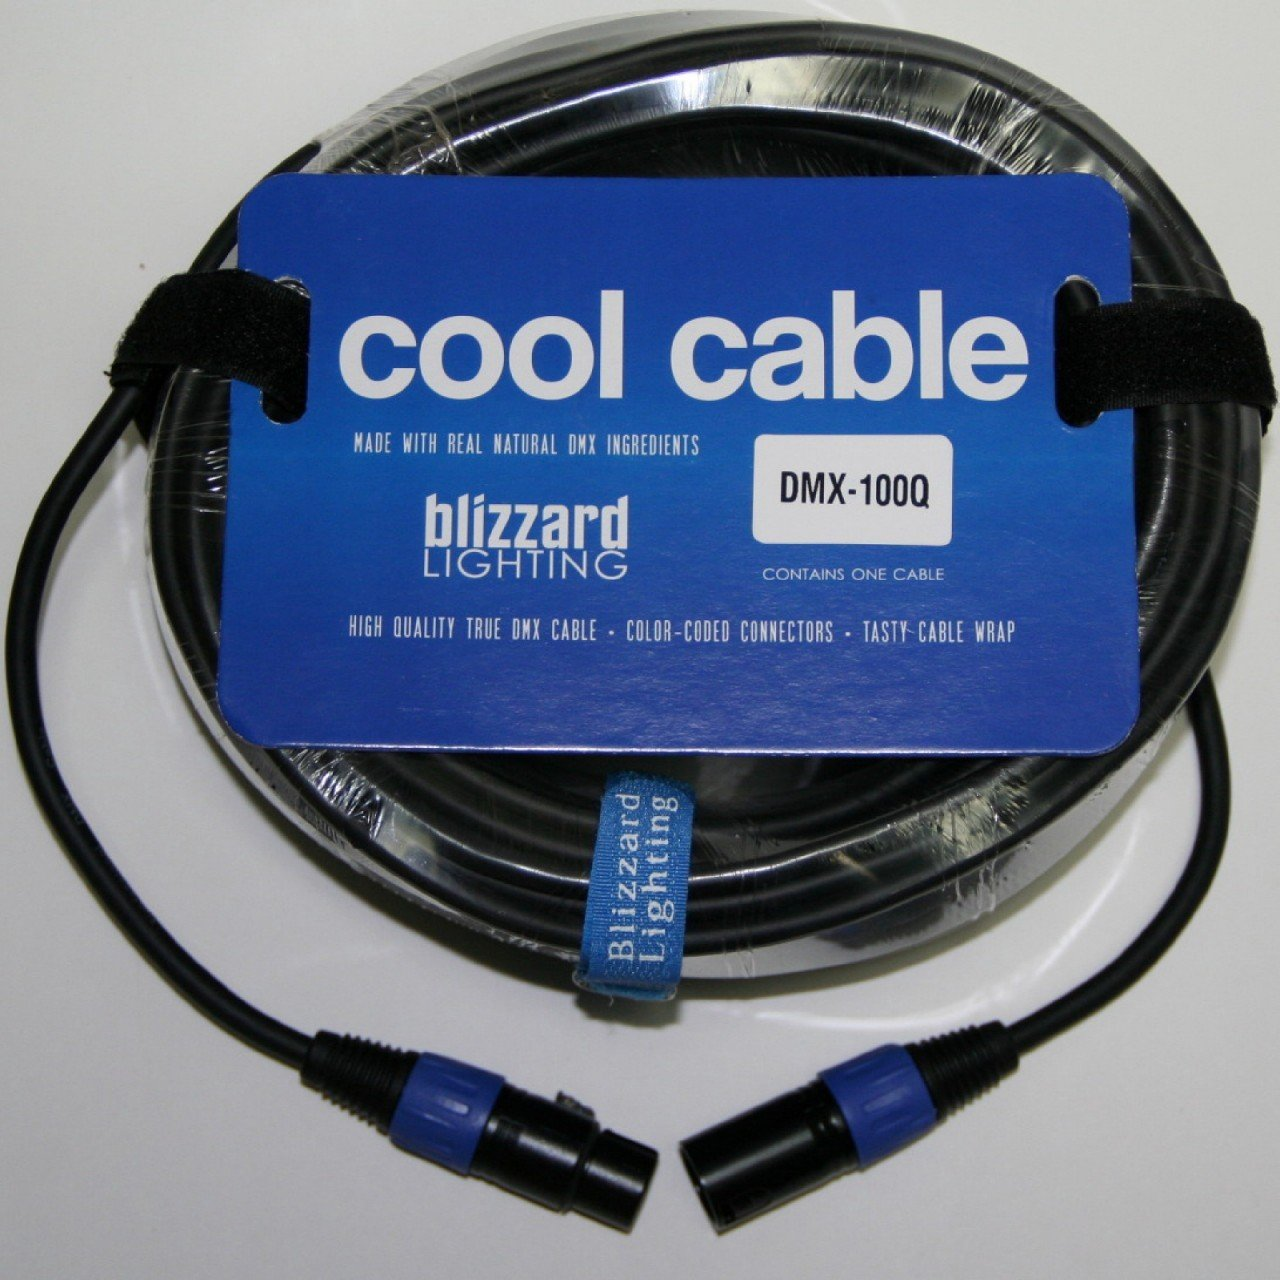 blizzard-lighting-dmx-100q-100ft-dmx-cable.jpg